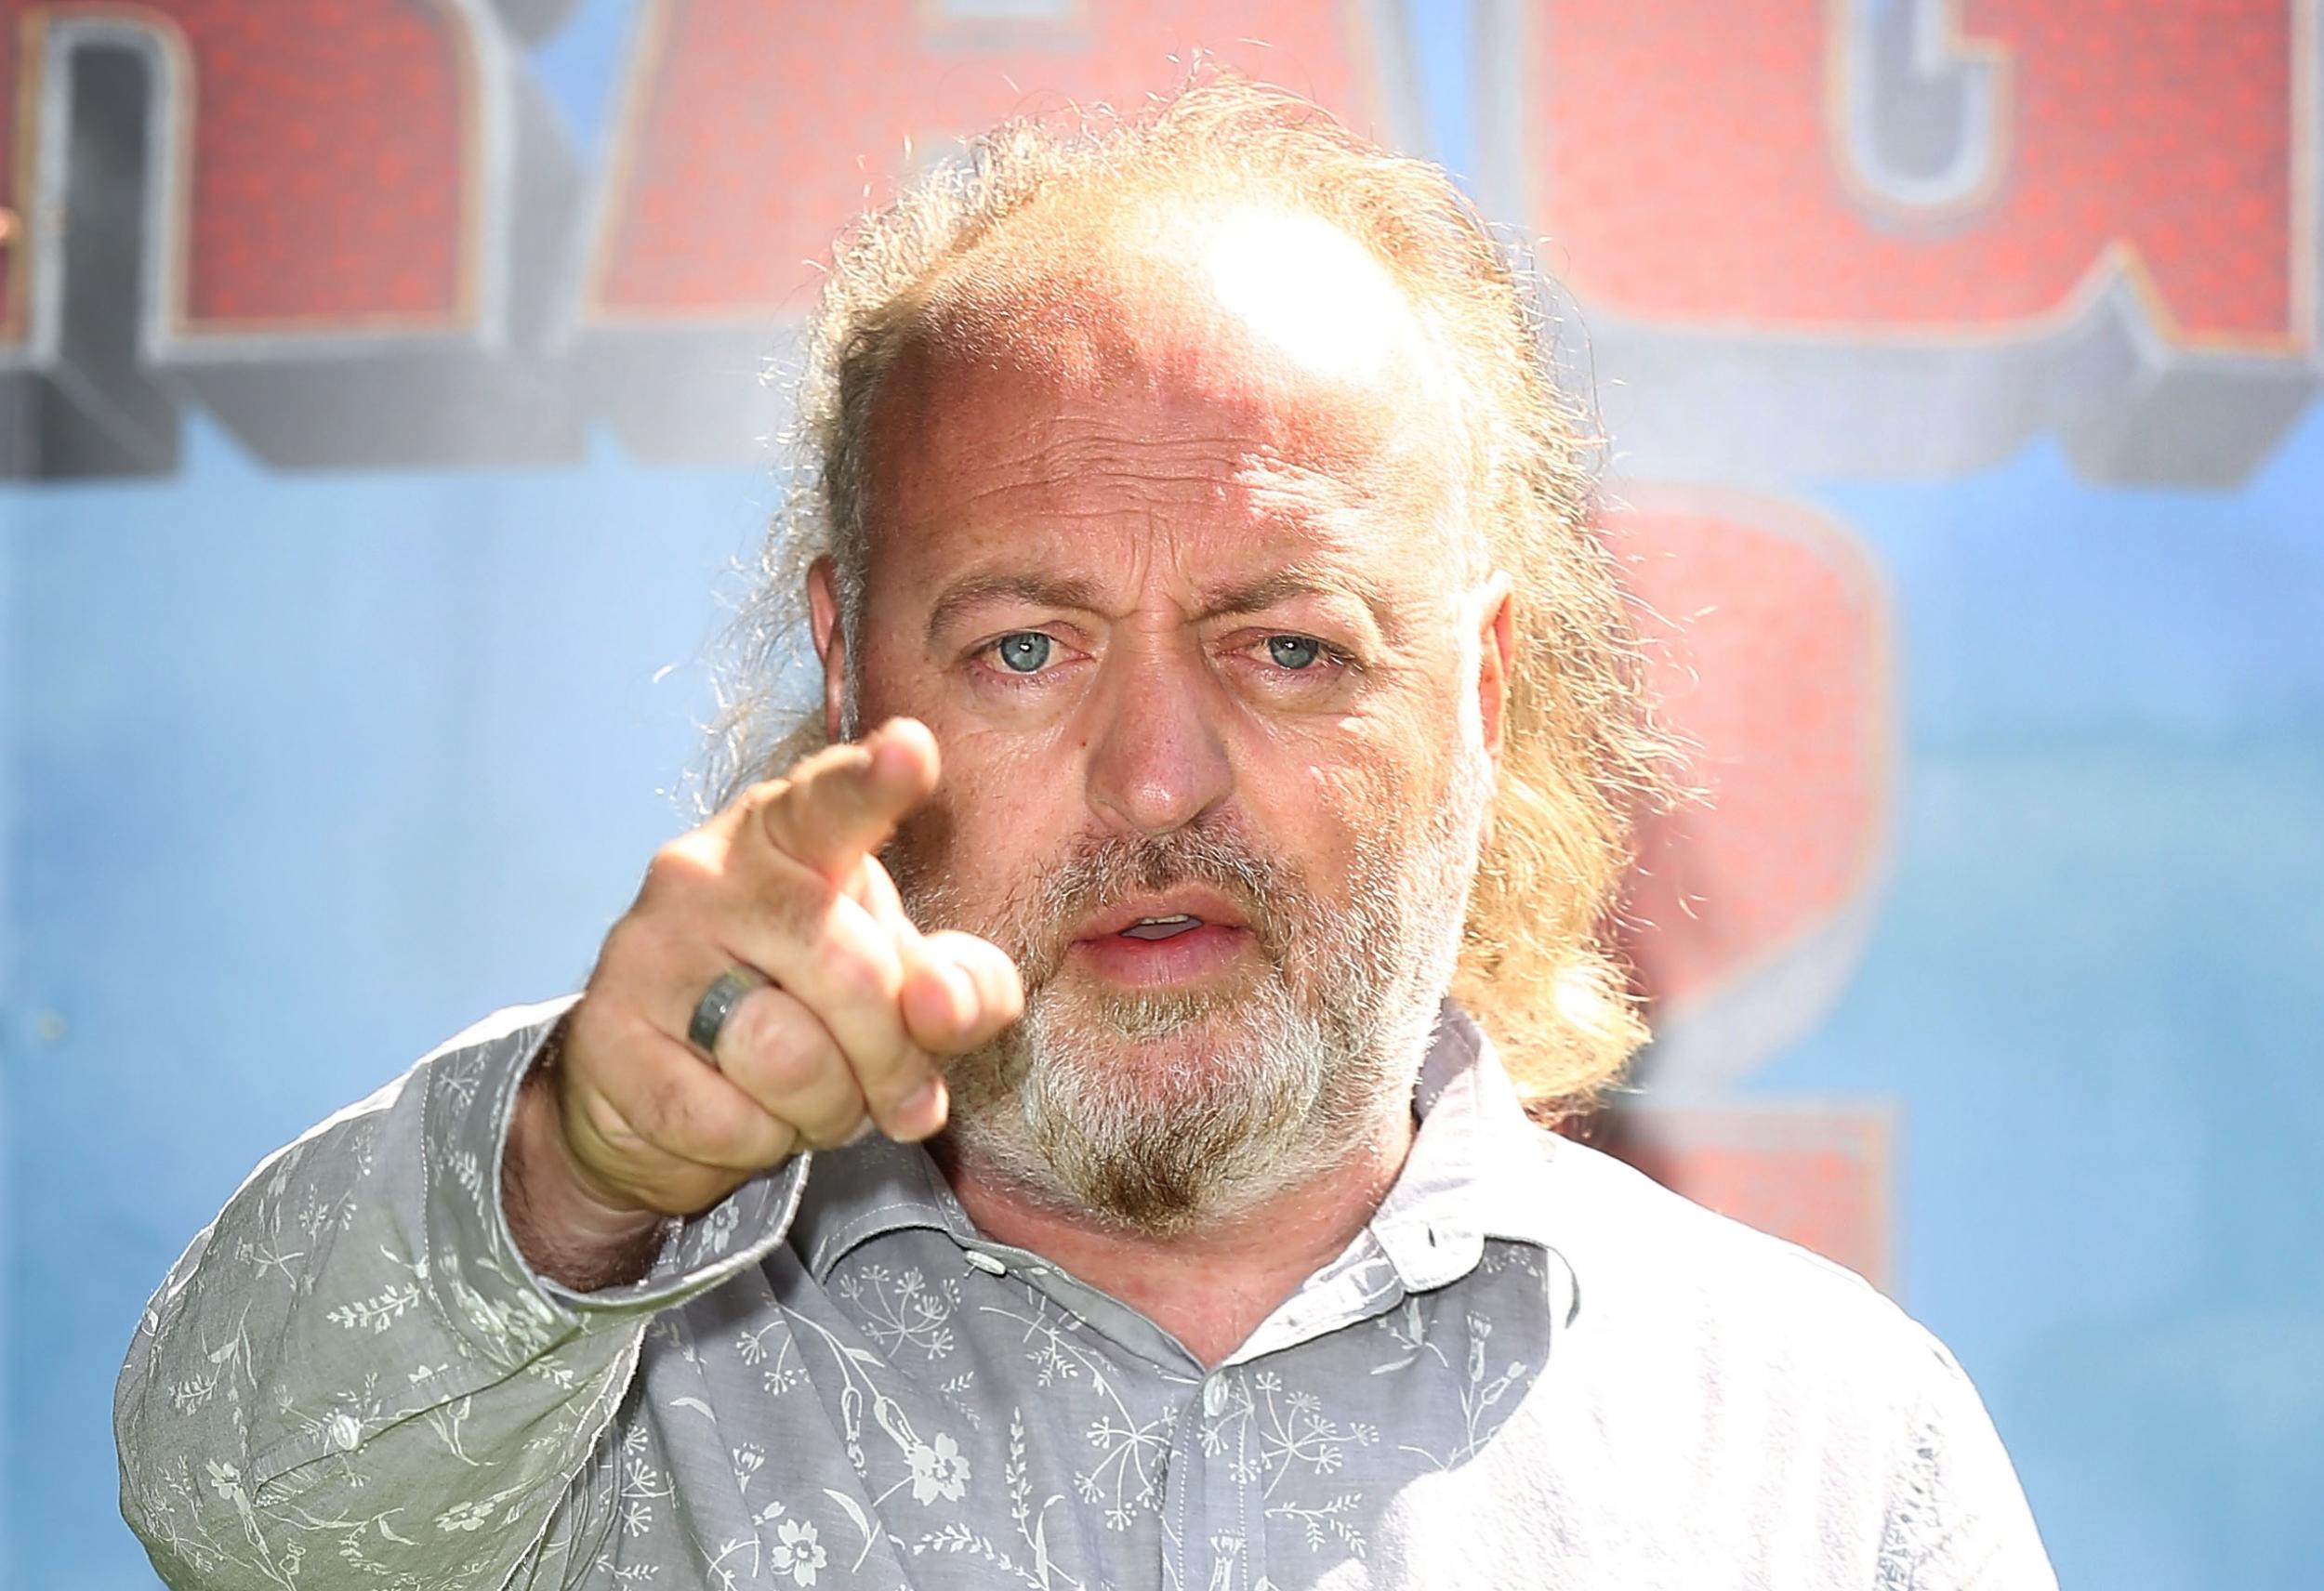 bill bailey part trollbill bailey instagram, bill bailey twitter, bill bailey dandelion mind, bill bailey wiki, bill bailey insta, bill bailey part troll, bill bailey enter sandman, bill bailey oud, bill bailey limboland, bill bailey bio, bill bailey biography, bill bailey youtube, bill bailey come home, bill bailey animals, bill bailey kraftwerk, bill bailey cockney music, bill bailey limboland dvd, bill bailey lyrics, bill bailey james blunt, bill bailey national anthem